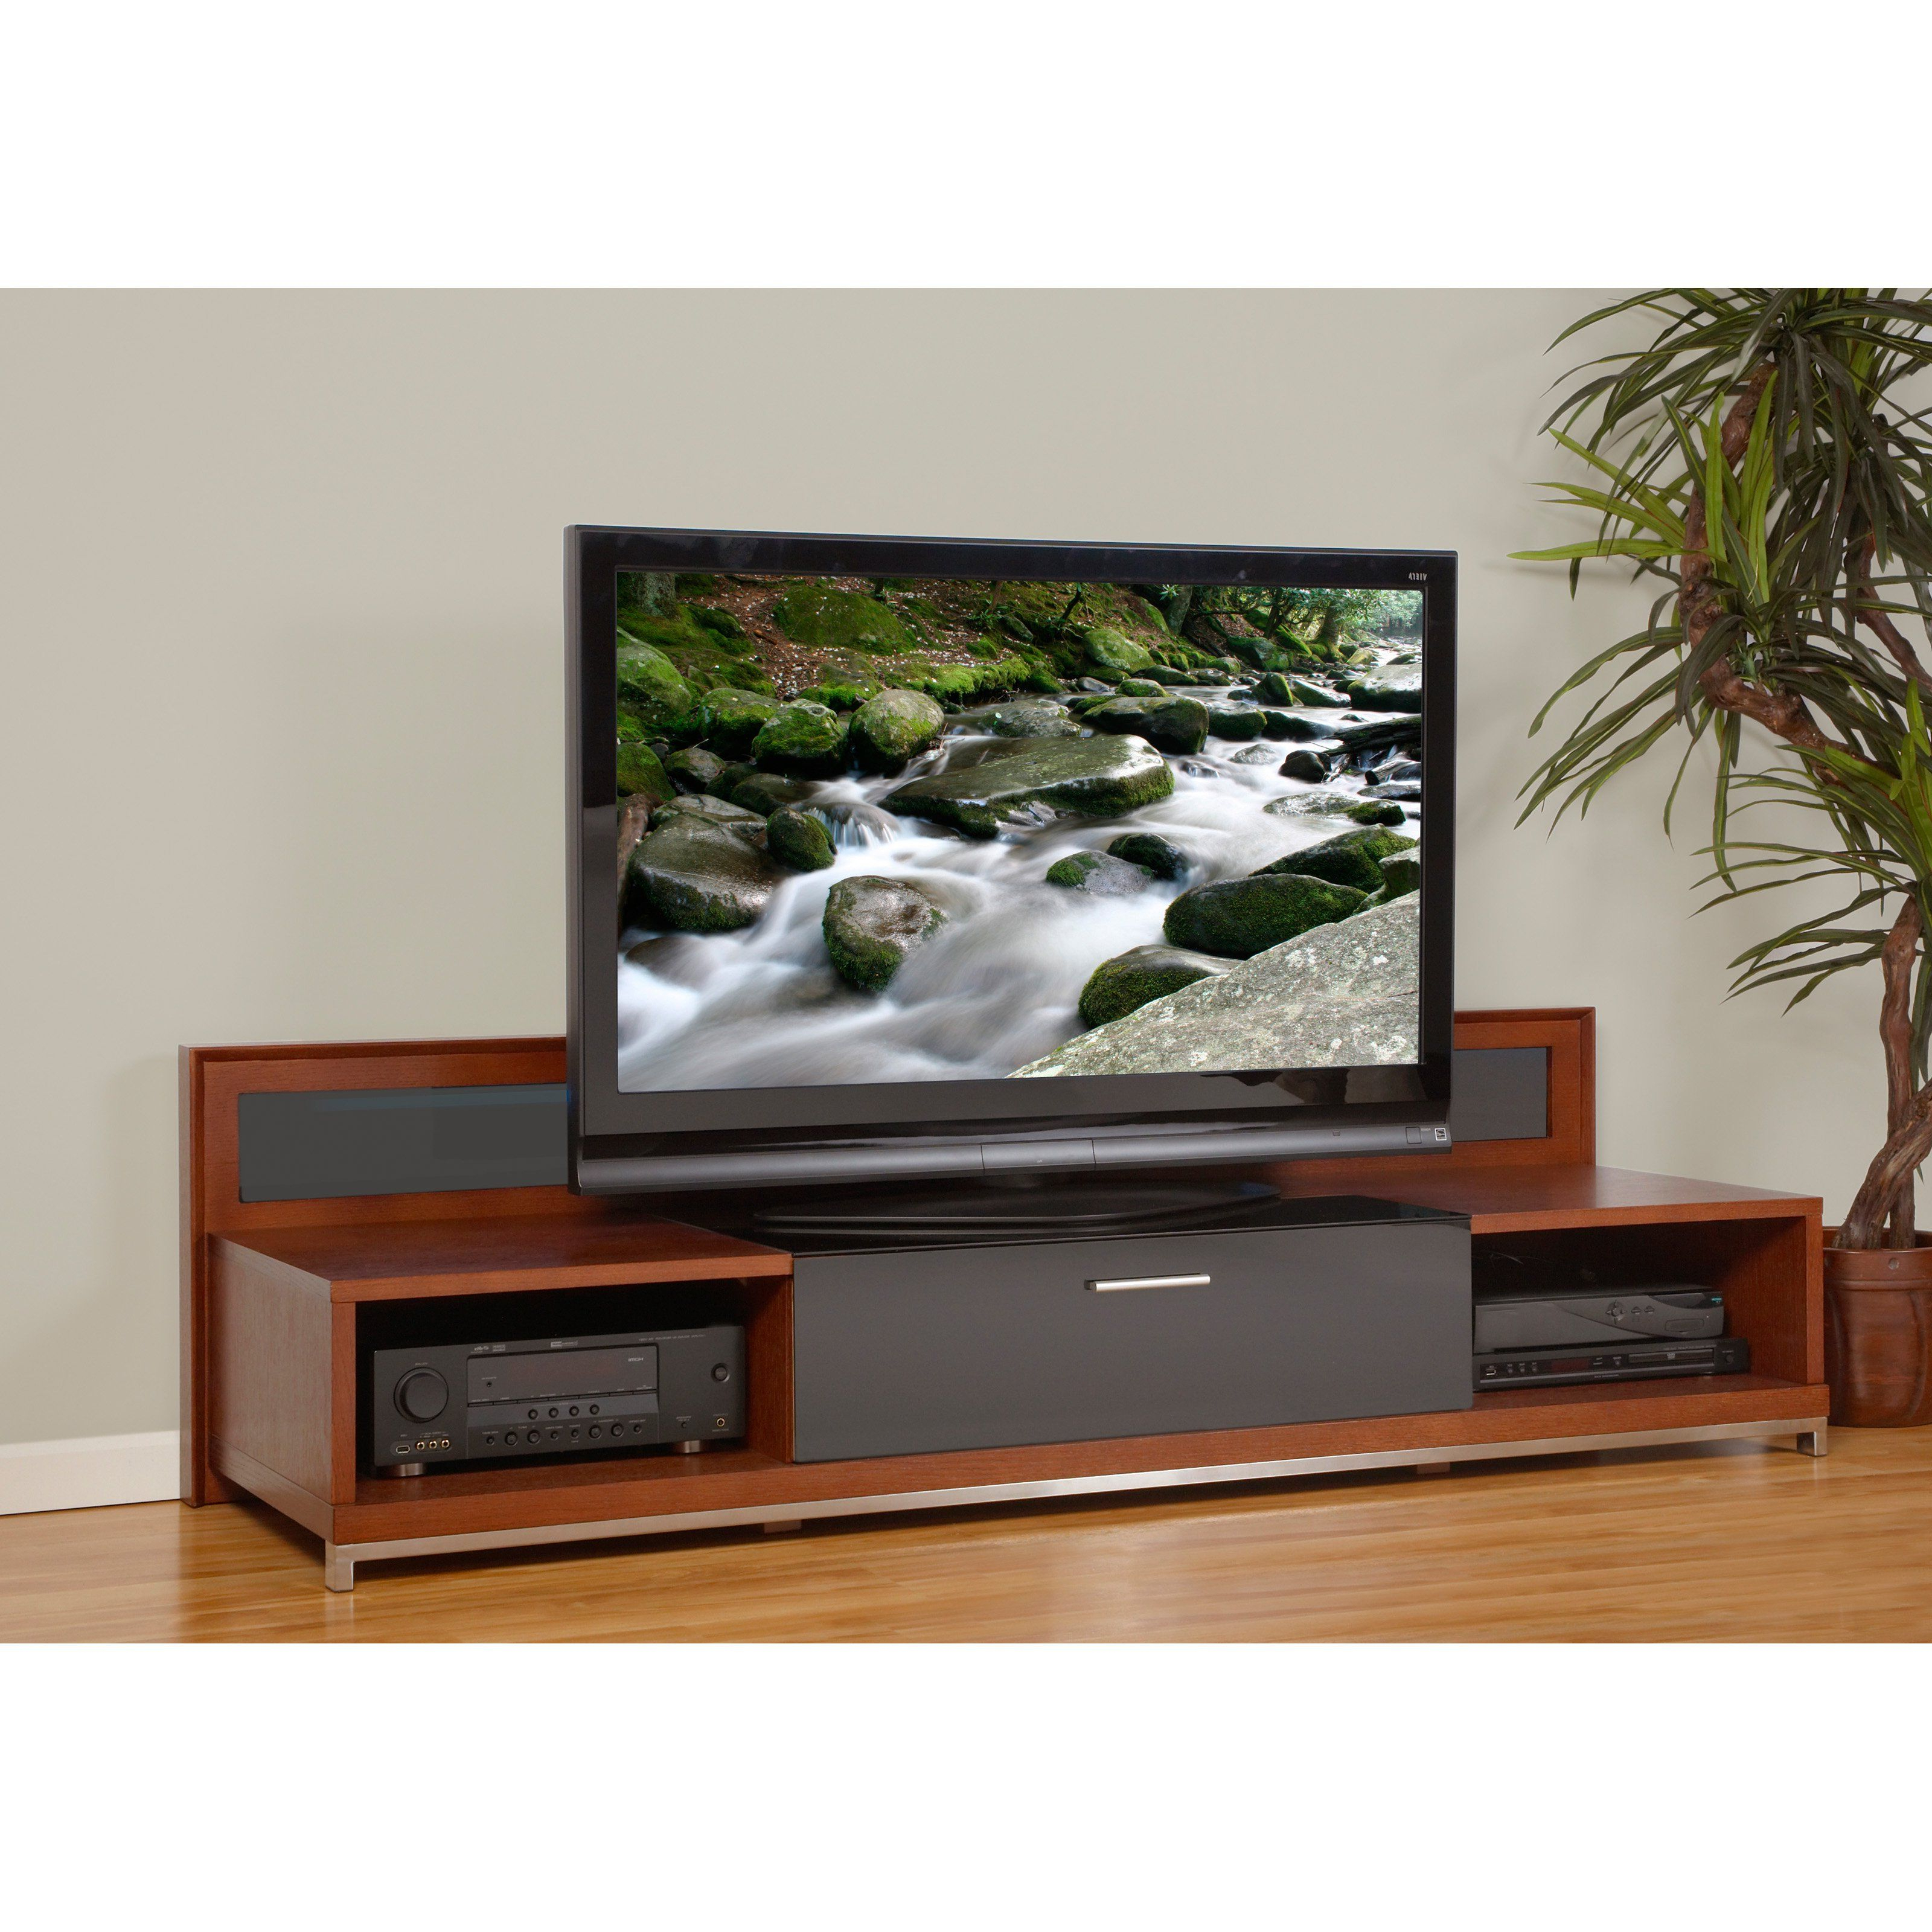 Have To Have It. Plateau Valencia 79 Inch Tv Stand In Walnut $999.99 Regarding Valencia 60 Inch Tv Stands (Gallery 2 of 20)